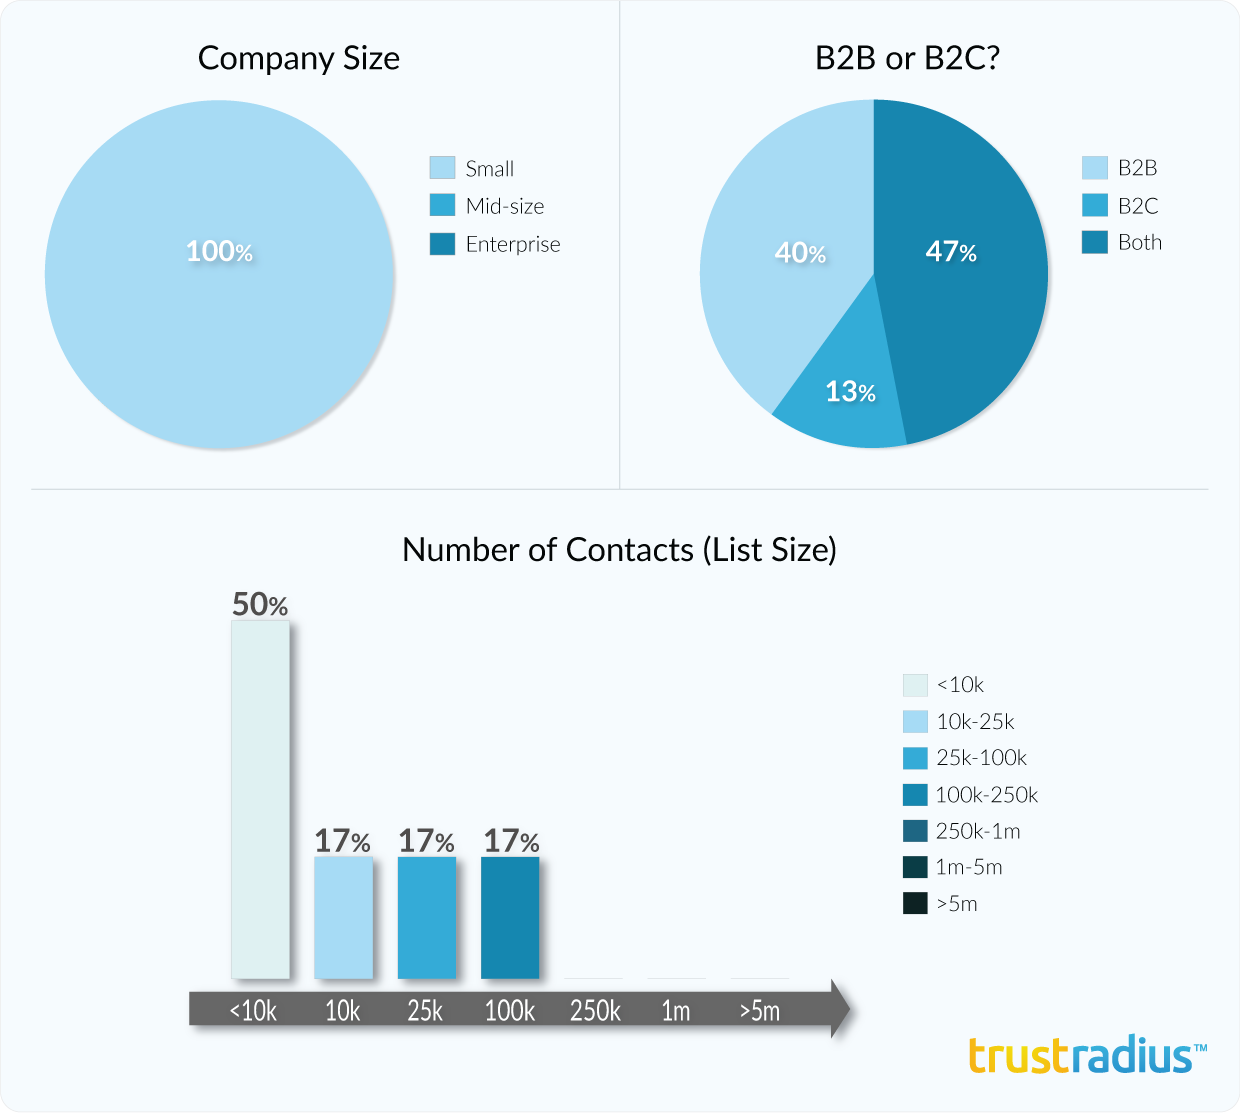 Infusionsoft customer demographics, including company size, email list size, and B2B or B2C use case.